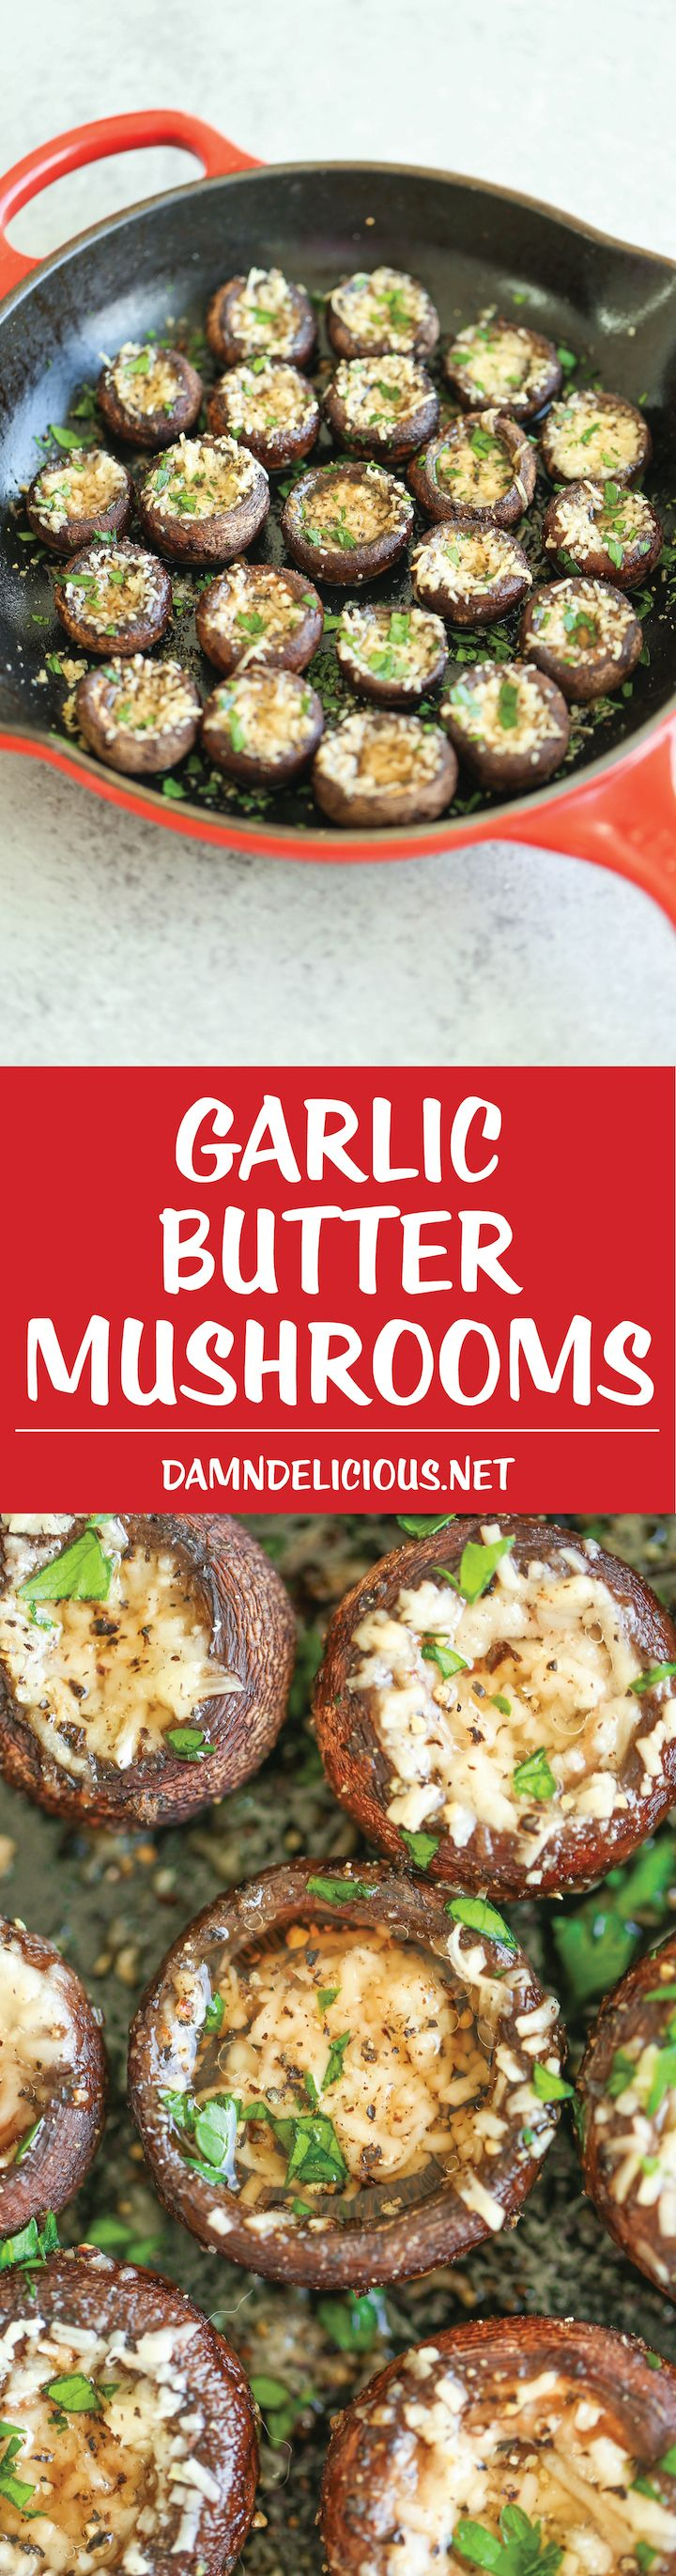 Garlic Butter Mushrooms - Simple, elegant yet so stinking easy. It's practically fool-proof! An essential side dish to all your meals!